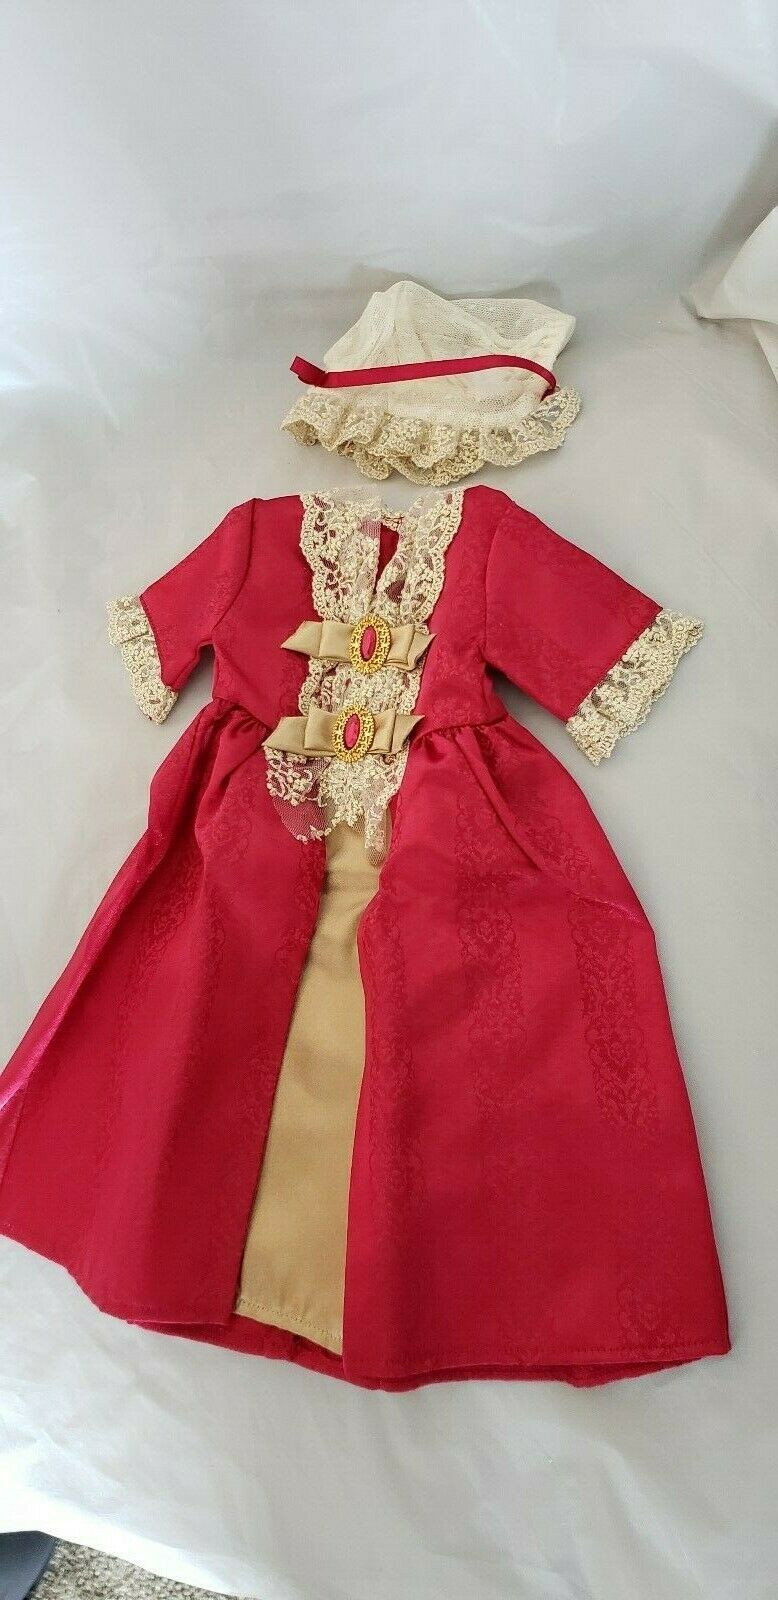 American Girl Doll Felicity's Gala Gown Outfit -- New and in Original Packaging